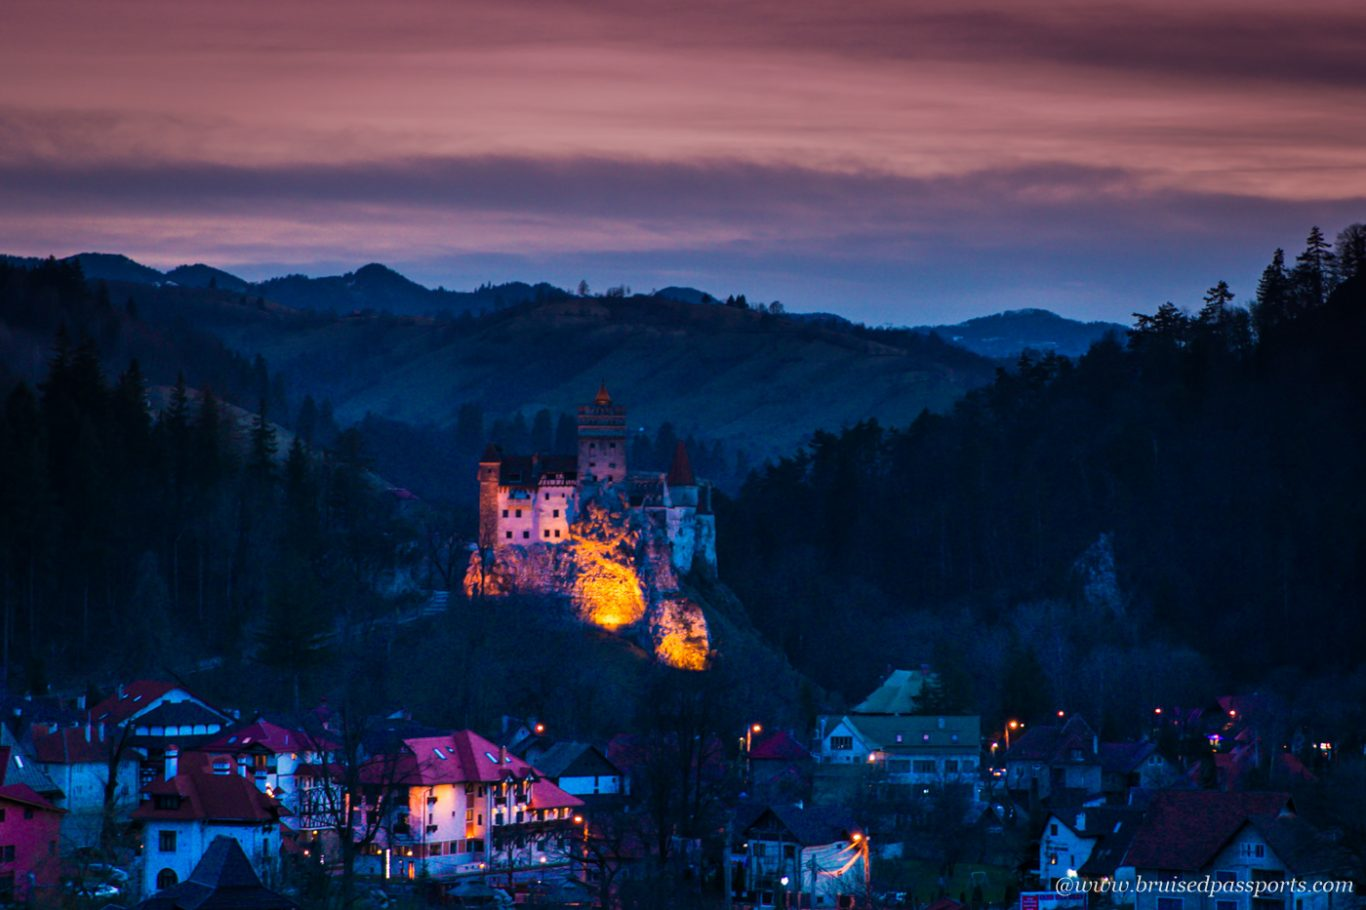 sunset at Bran castle - vantage view from Vila Bran